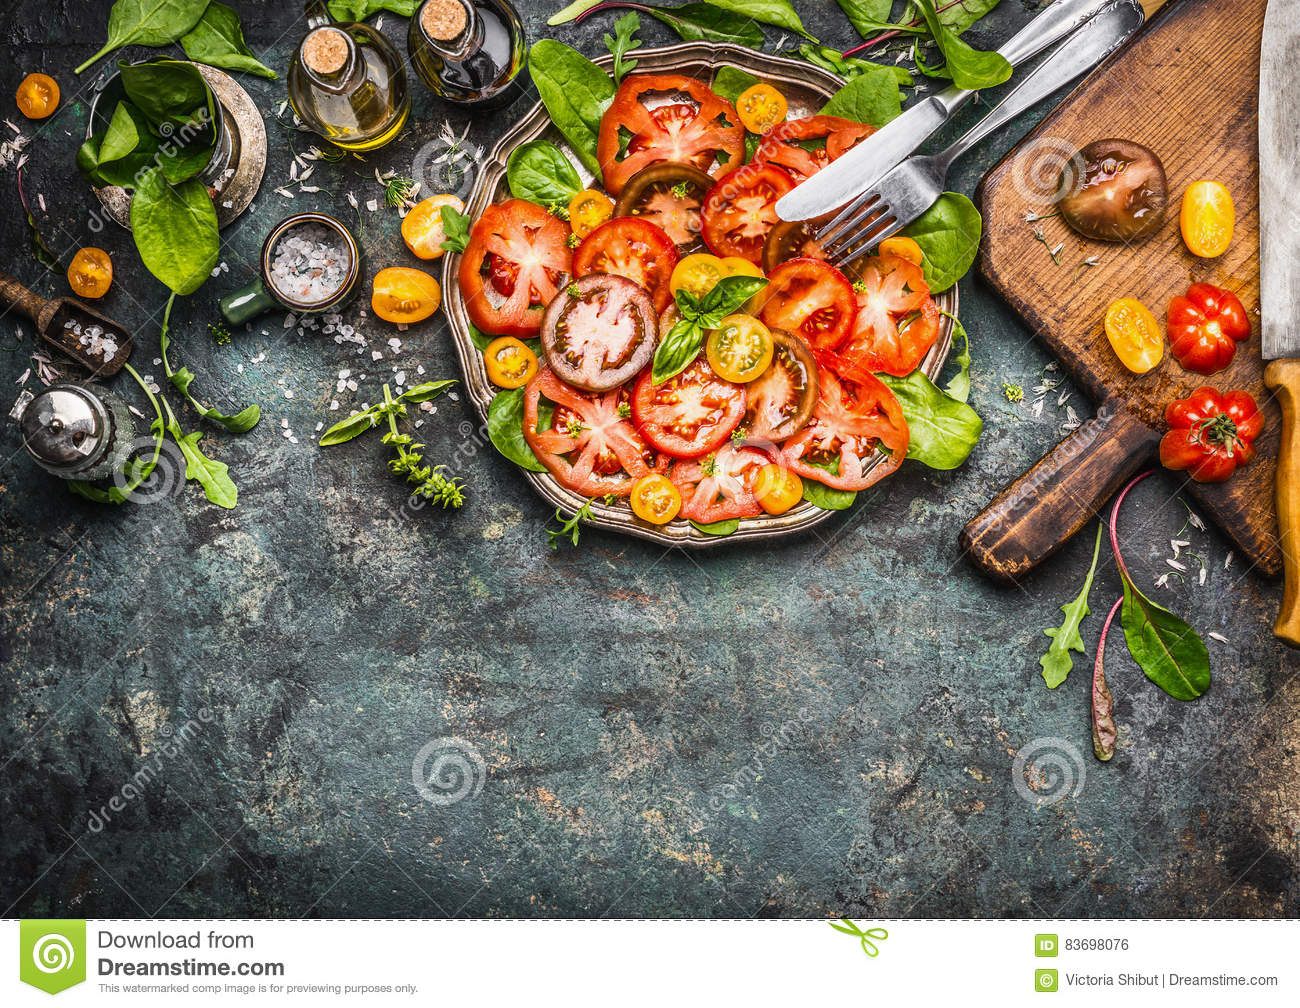 Colorful tomatoes salad preparation with cutting board, plate and cutlery , top view